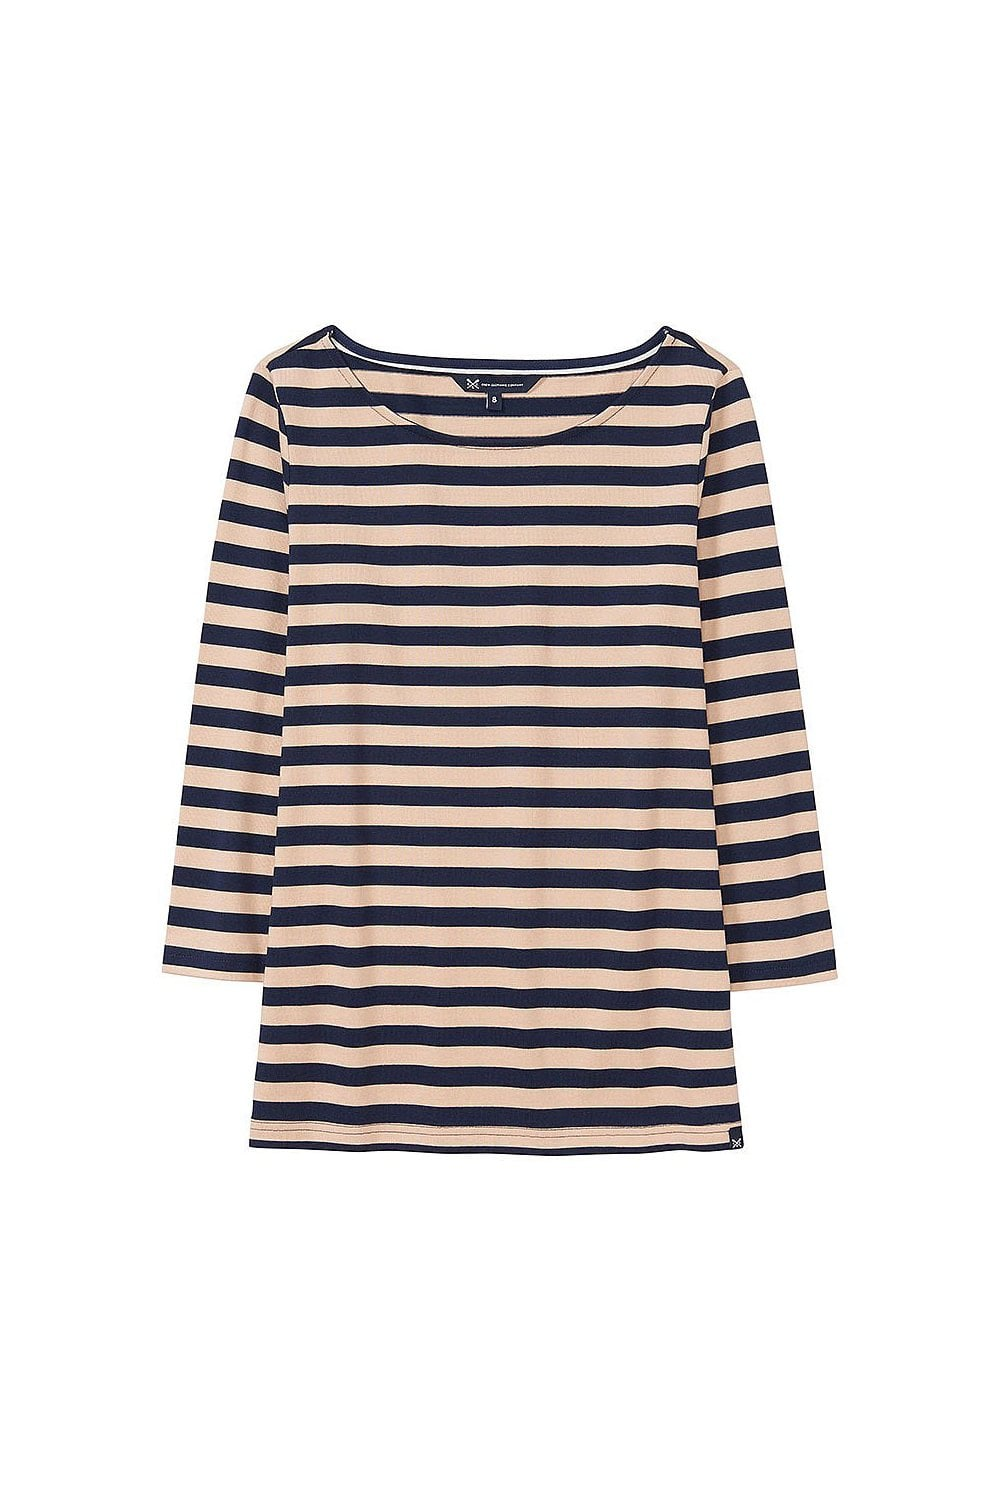 1847abaee1c2 Crew Clothing Womens Ultimate Breton - Navy/Almond - Womenswear from  Potters of Buxton UK